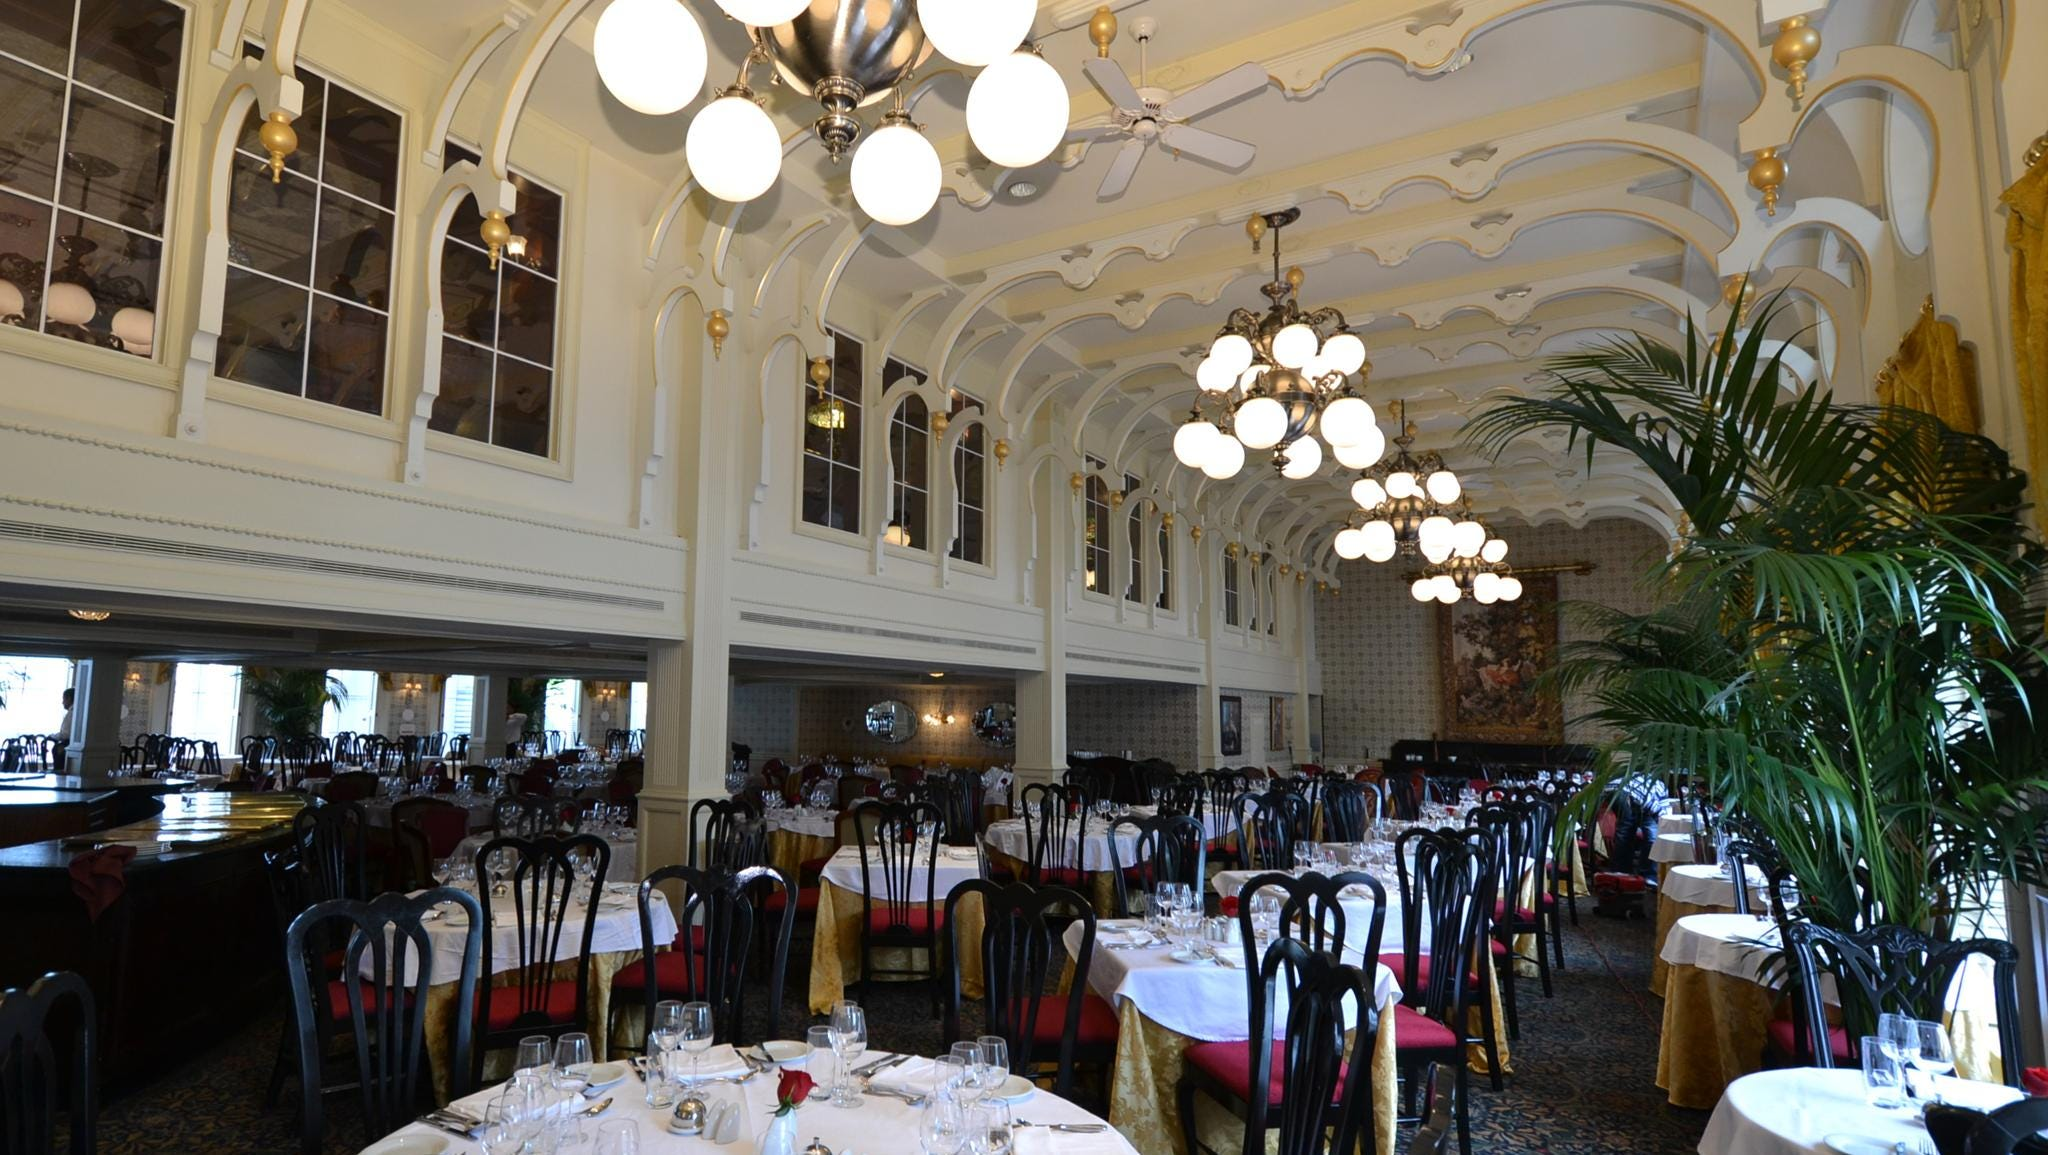 The ceiling of the American Queen's J.M. White Dining Room soars two stories in places and has large windows that look out to the rivers on which the American Queen sails.